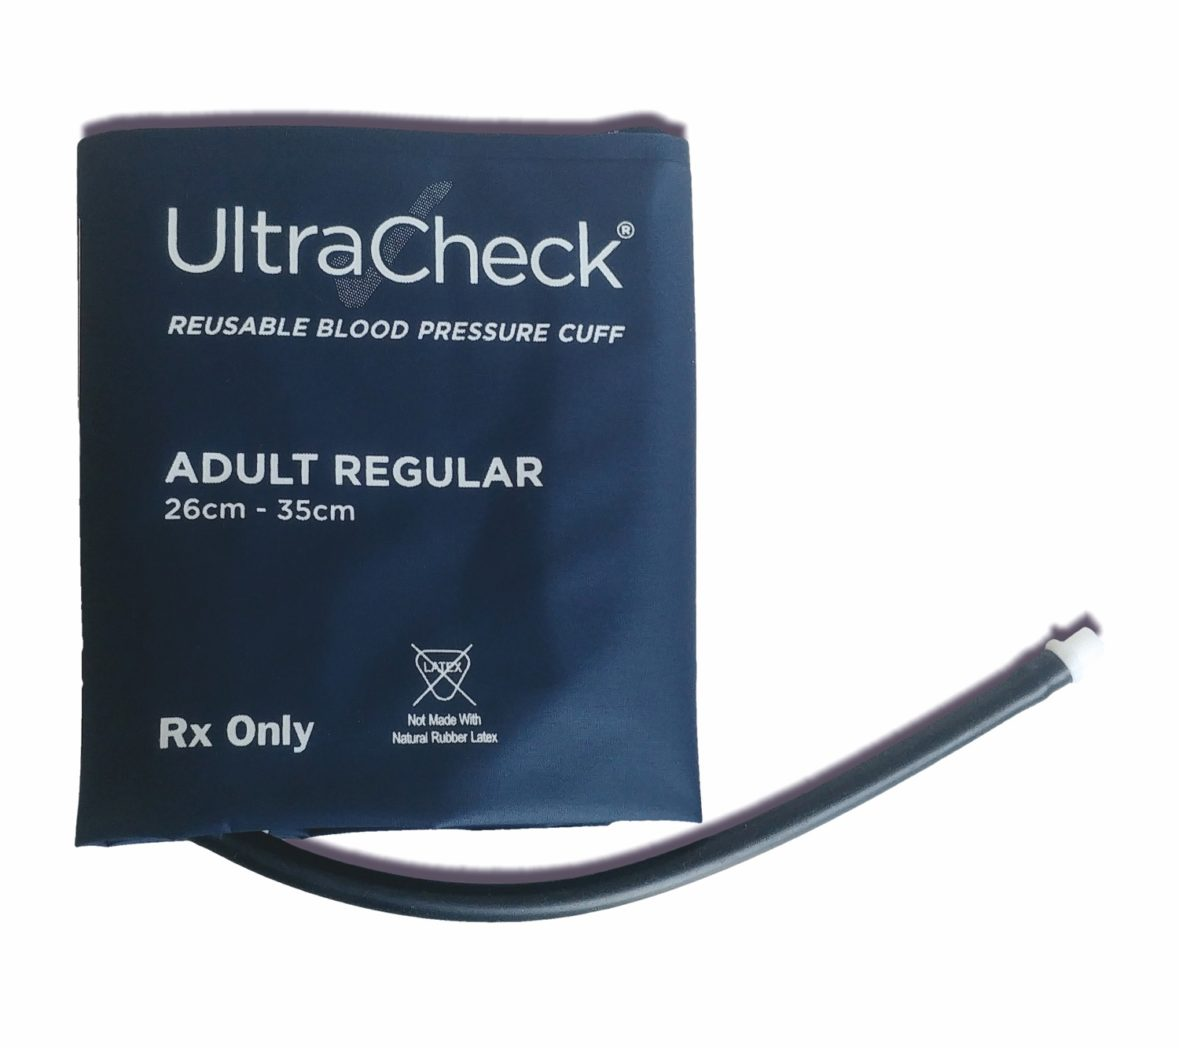 UltraCheck